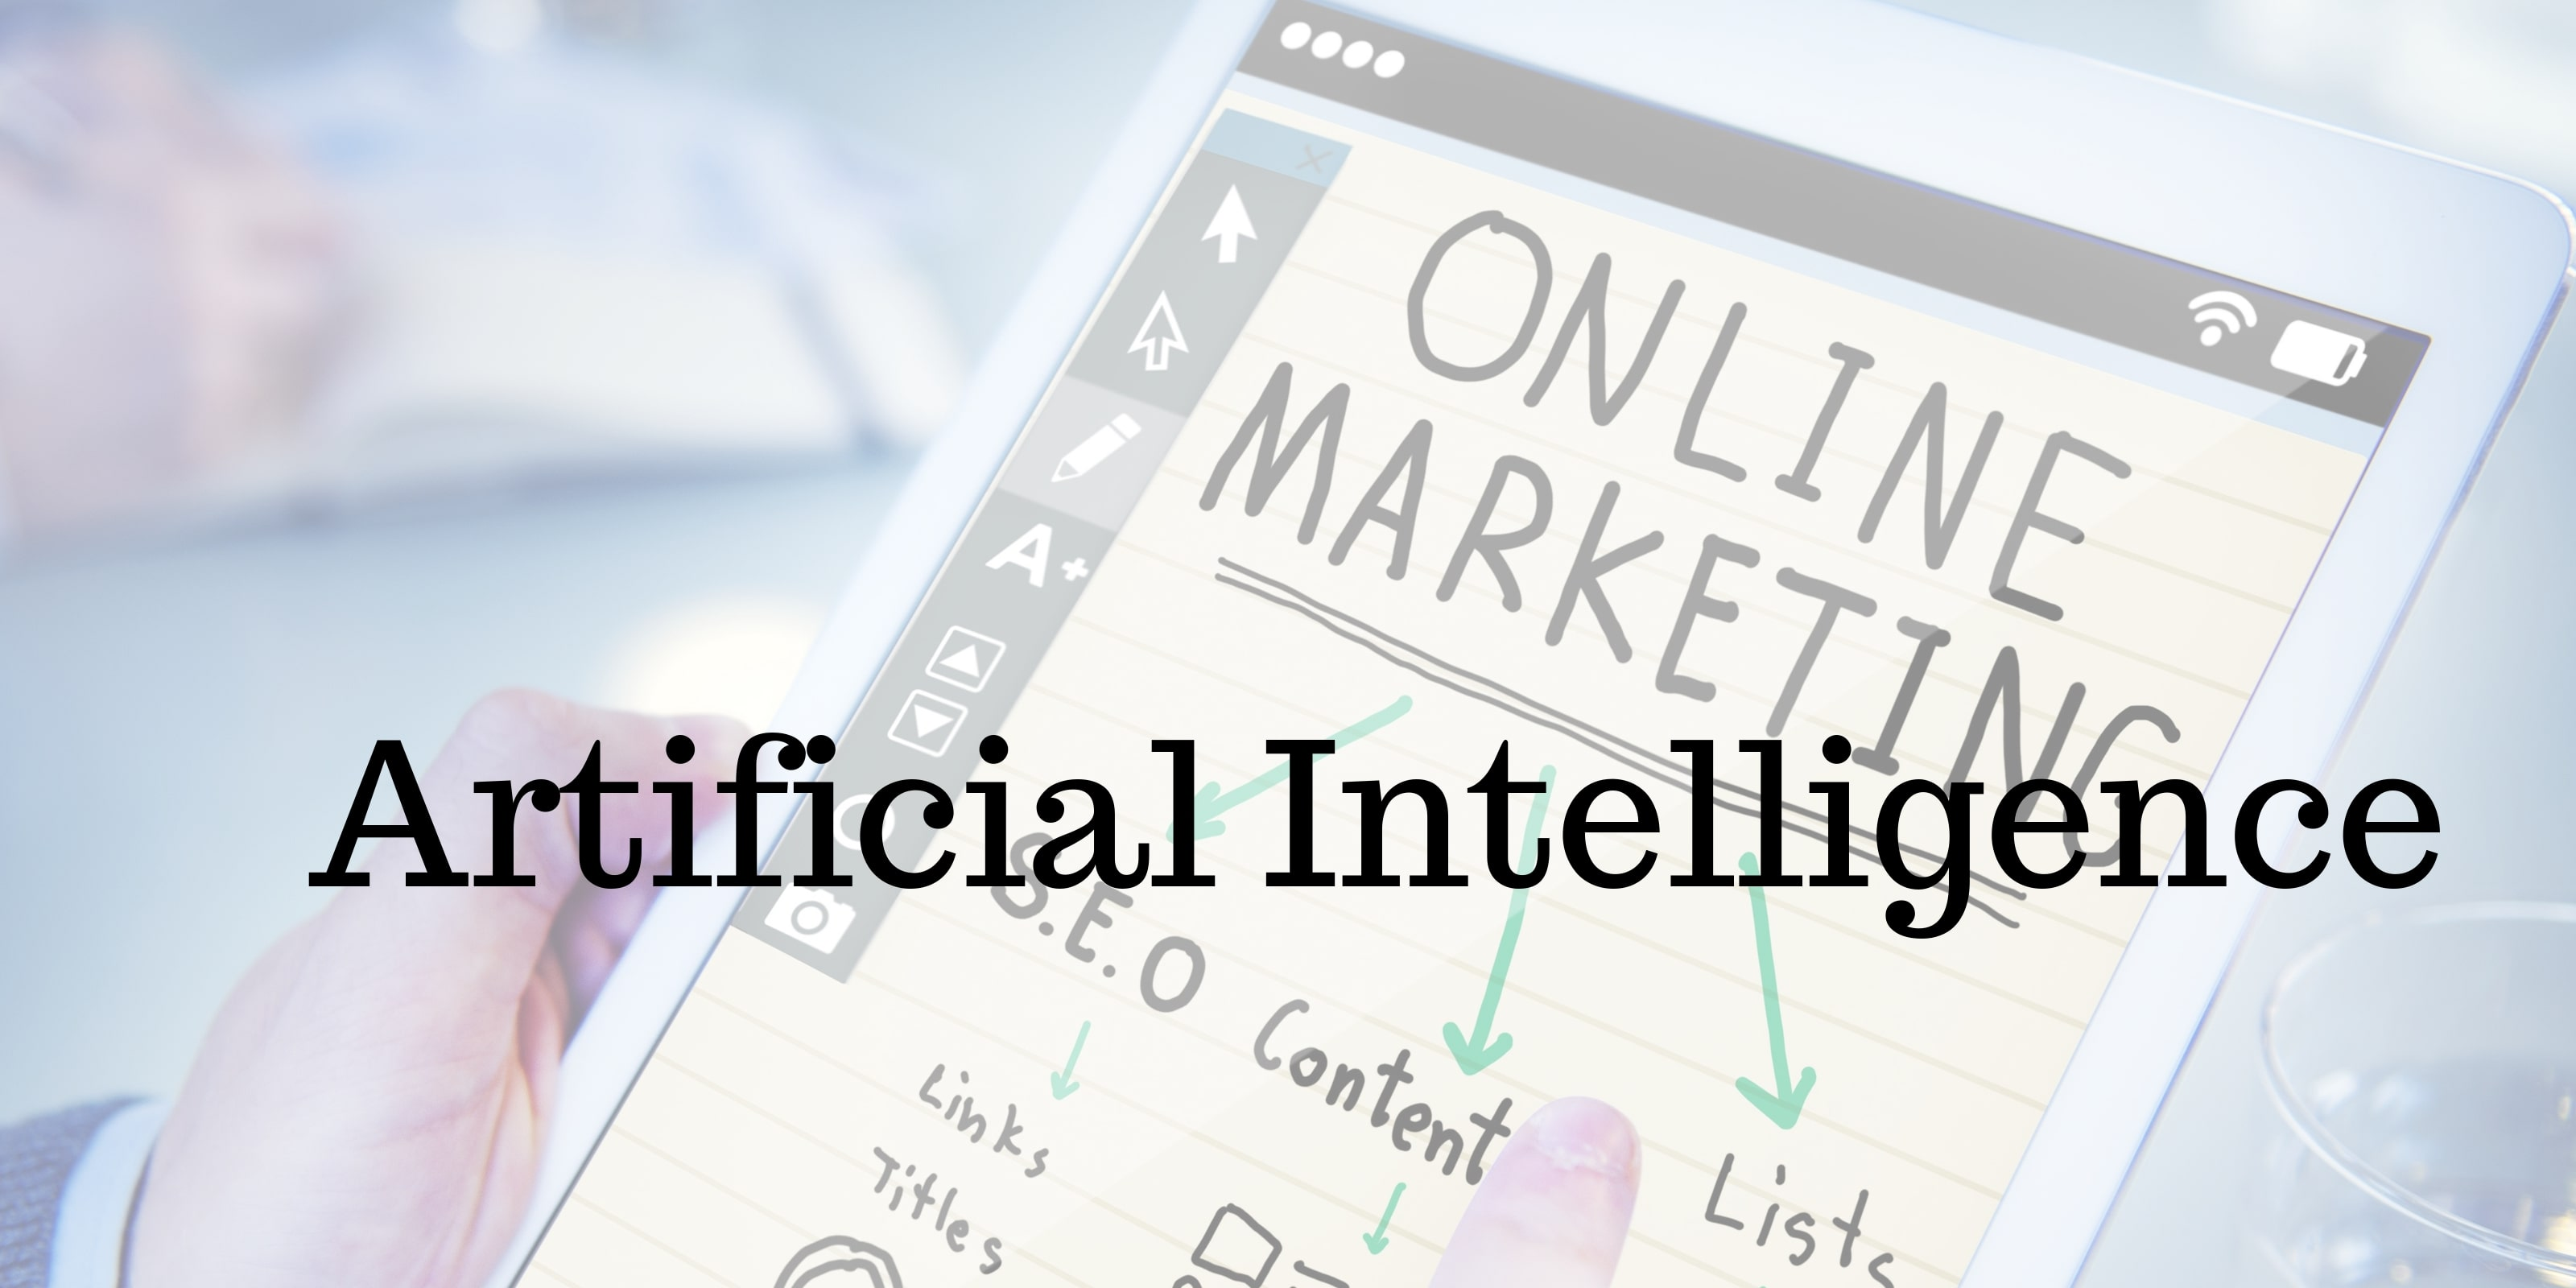 Artificial Intelligence and Digital Marketing